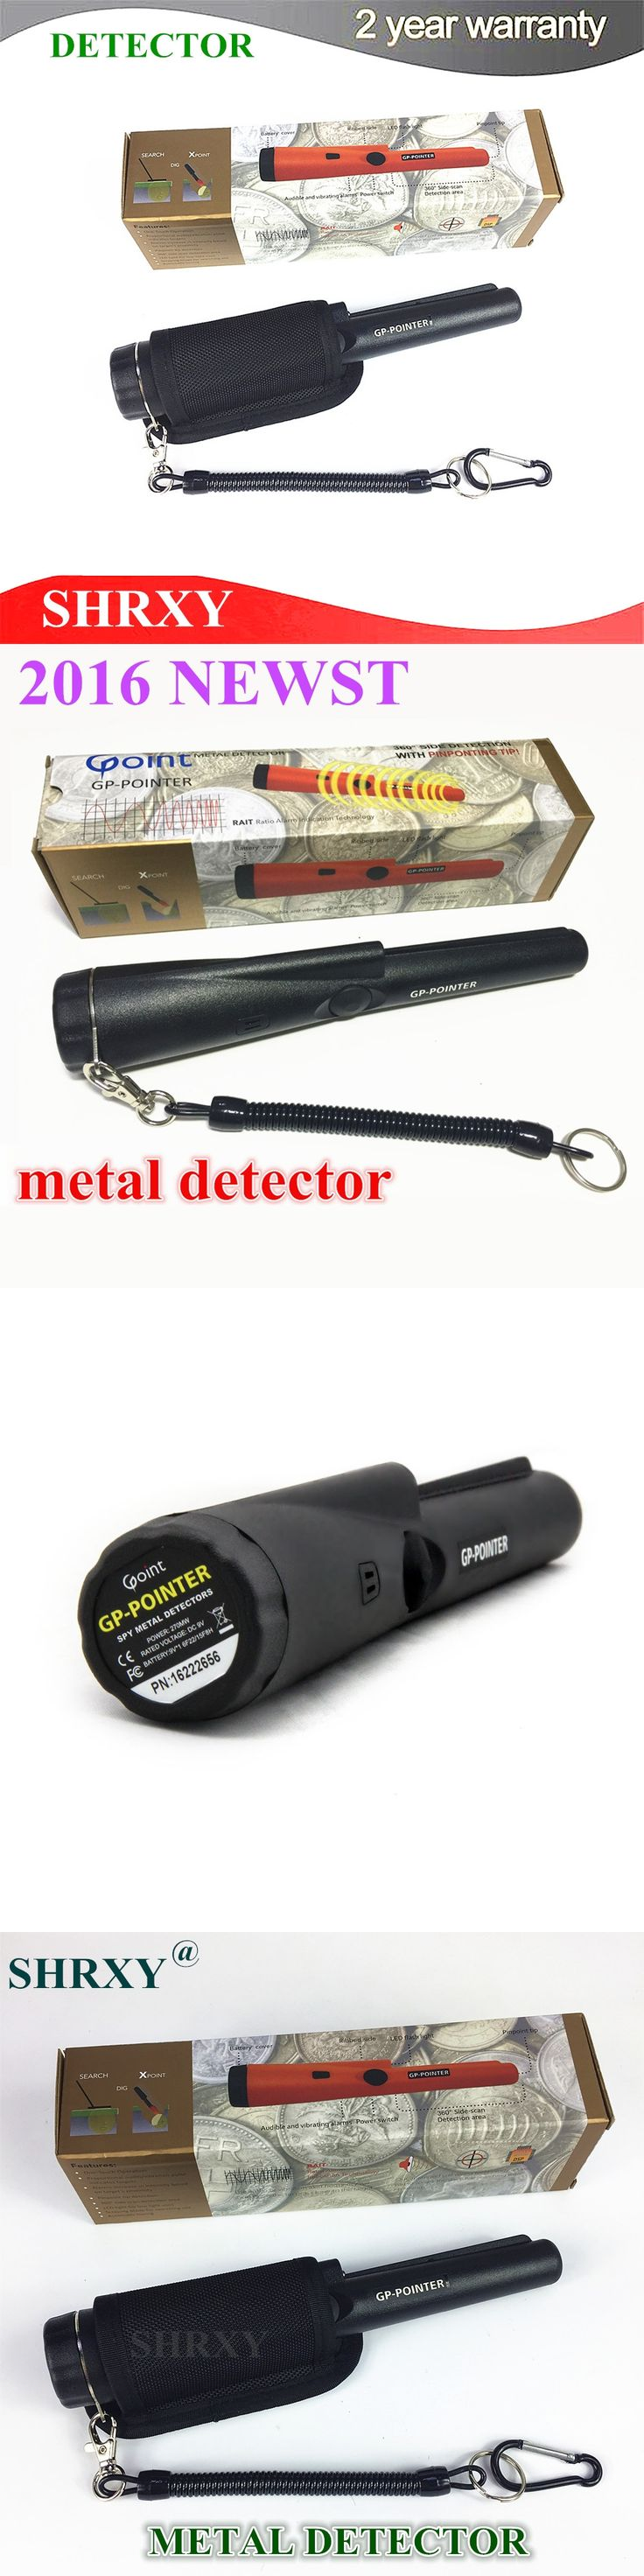 FREE SHIPPING 2017 Hot sale Garrett Metal Detector The Same Style Pro Pointer Pinpointing  Hand Held Metal Detector Design